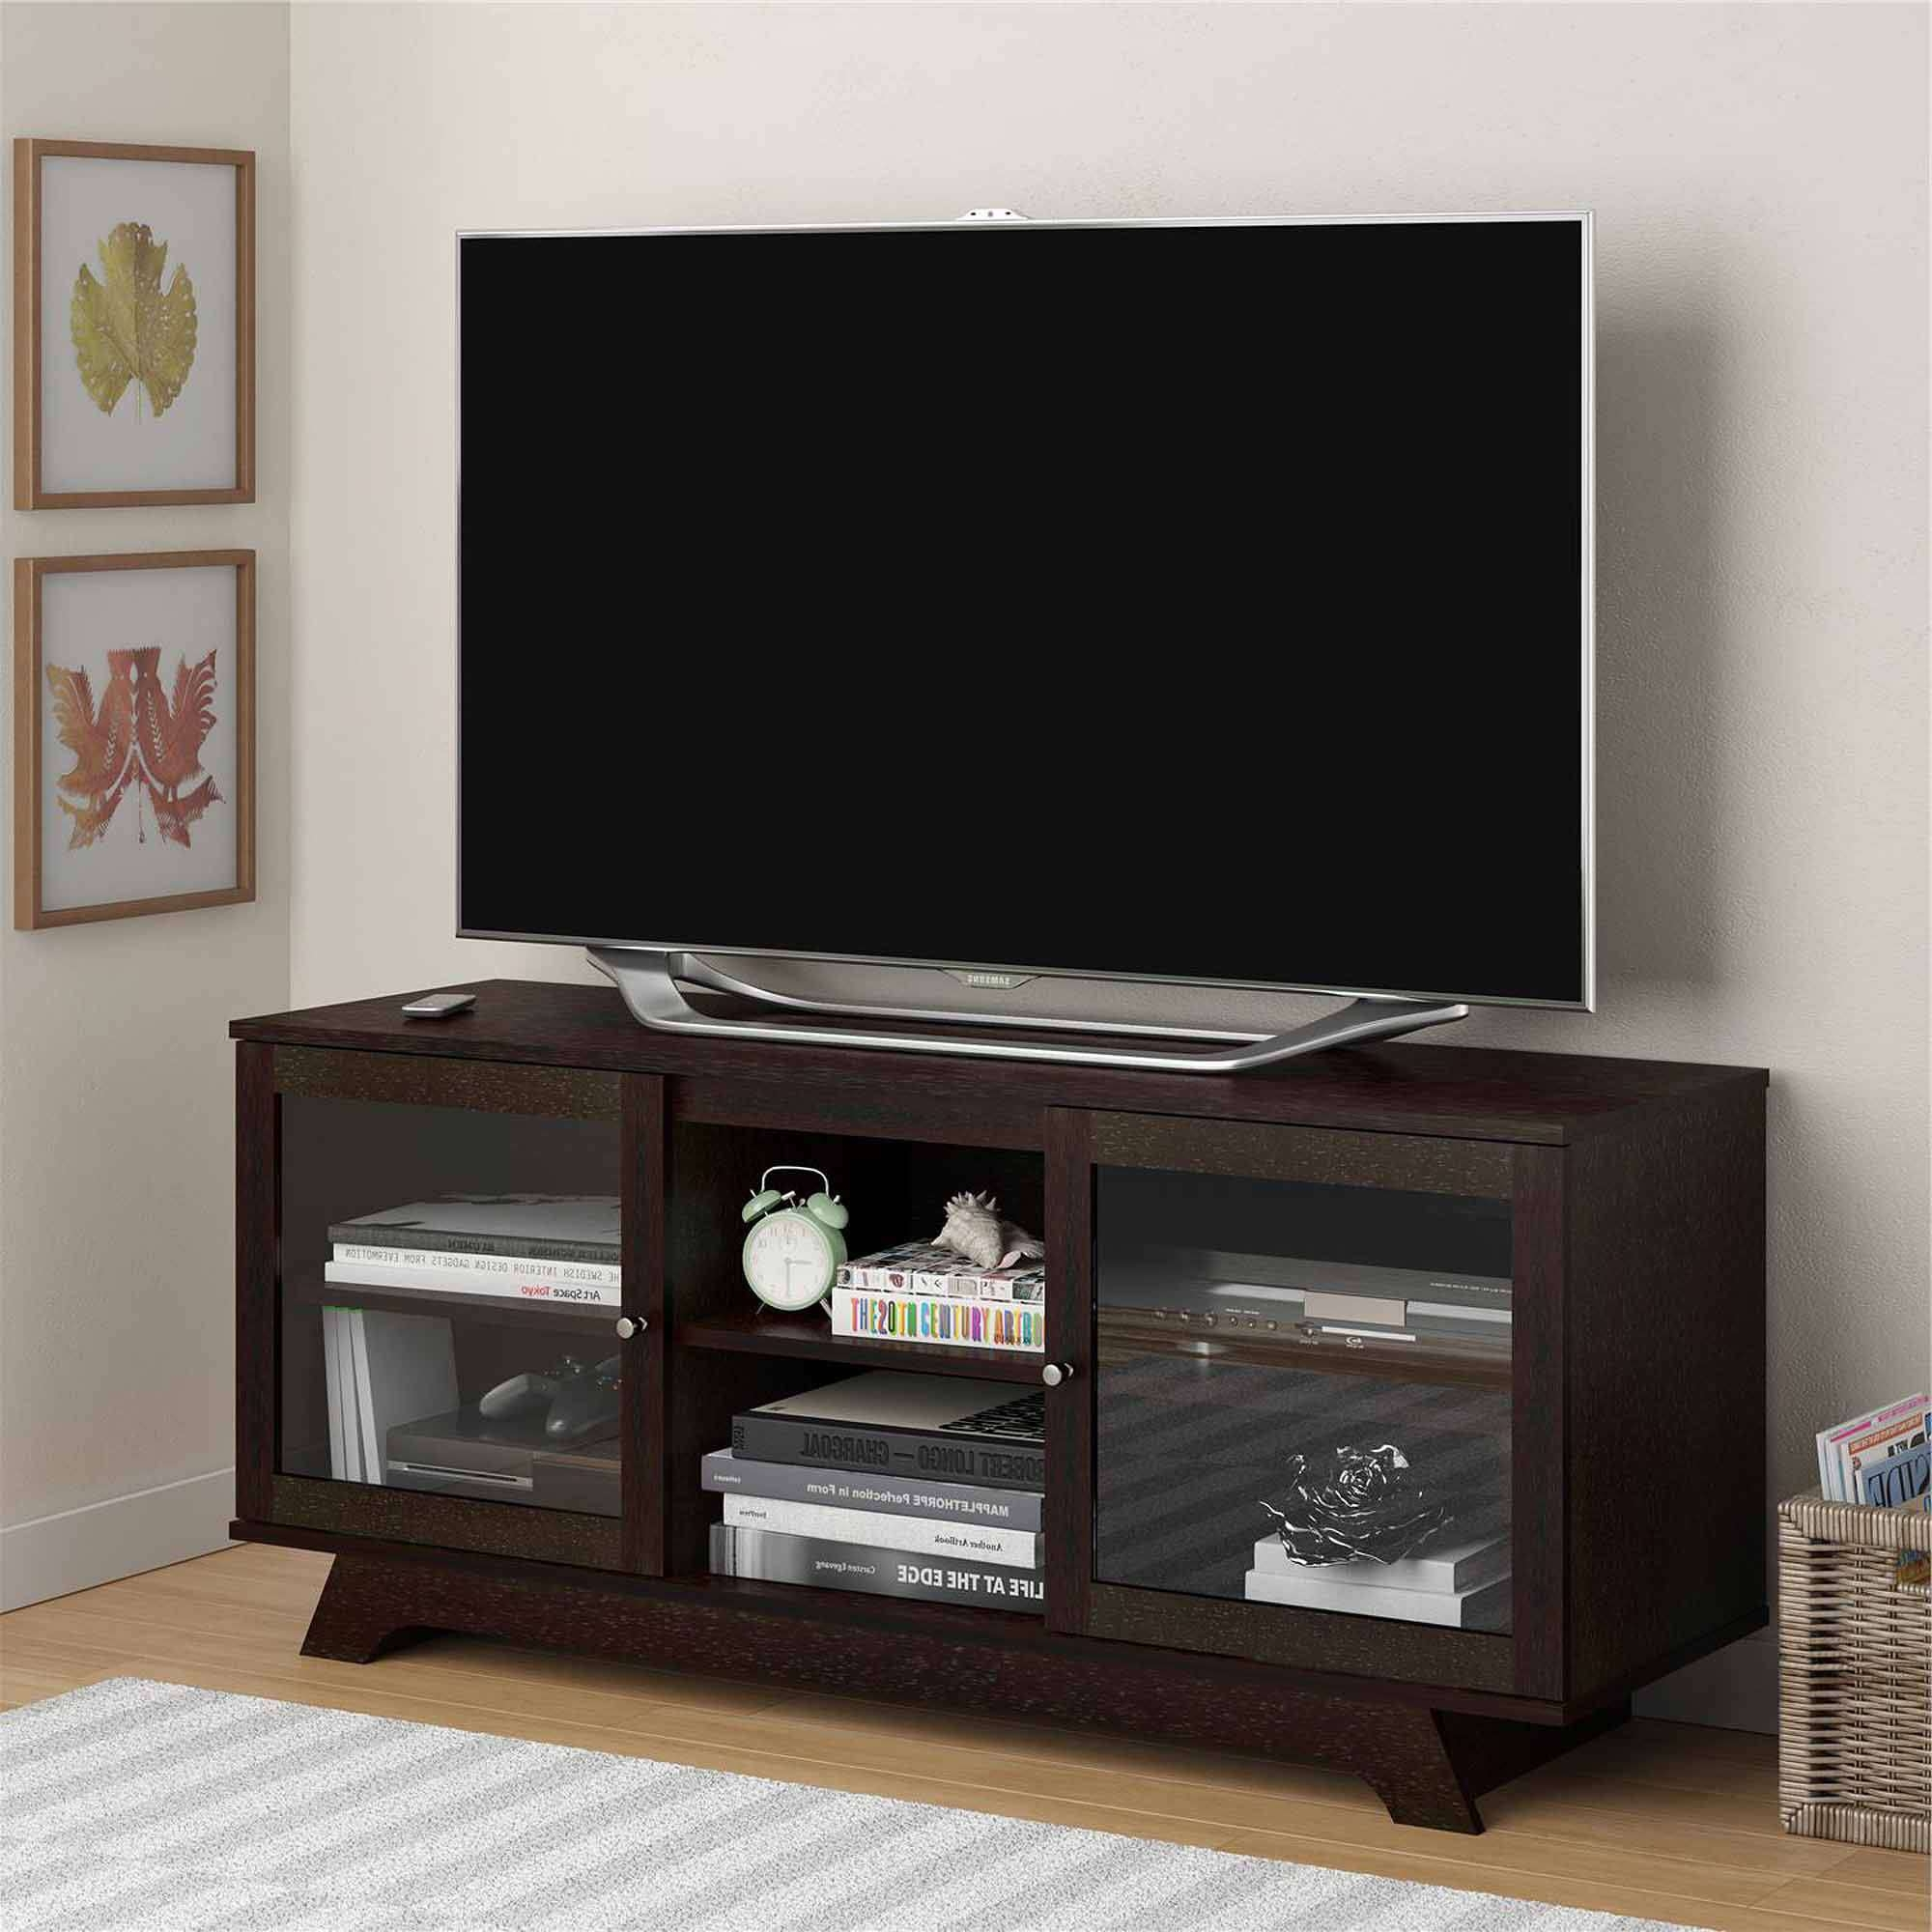 Tv Stands & Entertainment Centers – Walmart Inside Tv Stands For 50 Inch Tvs (View 15 of 15)